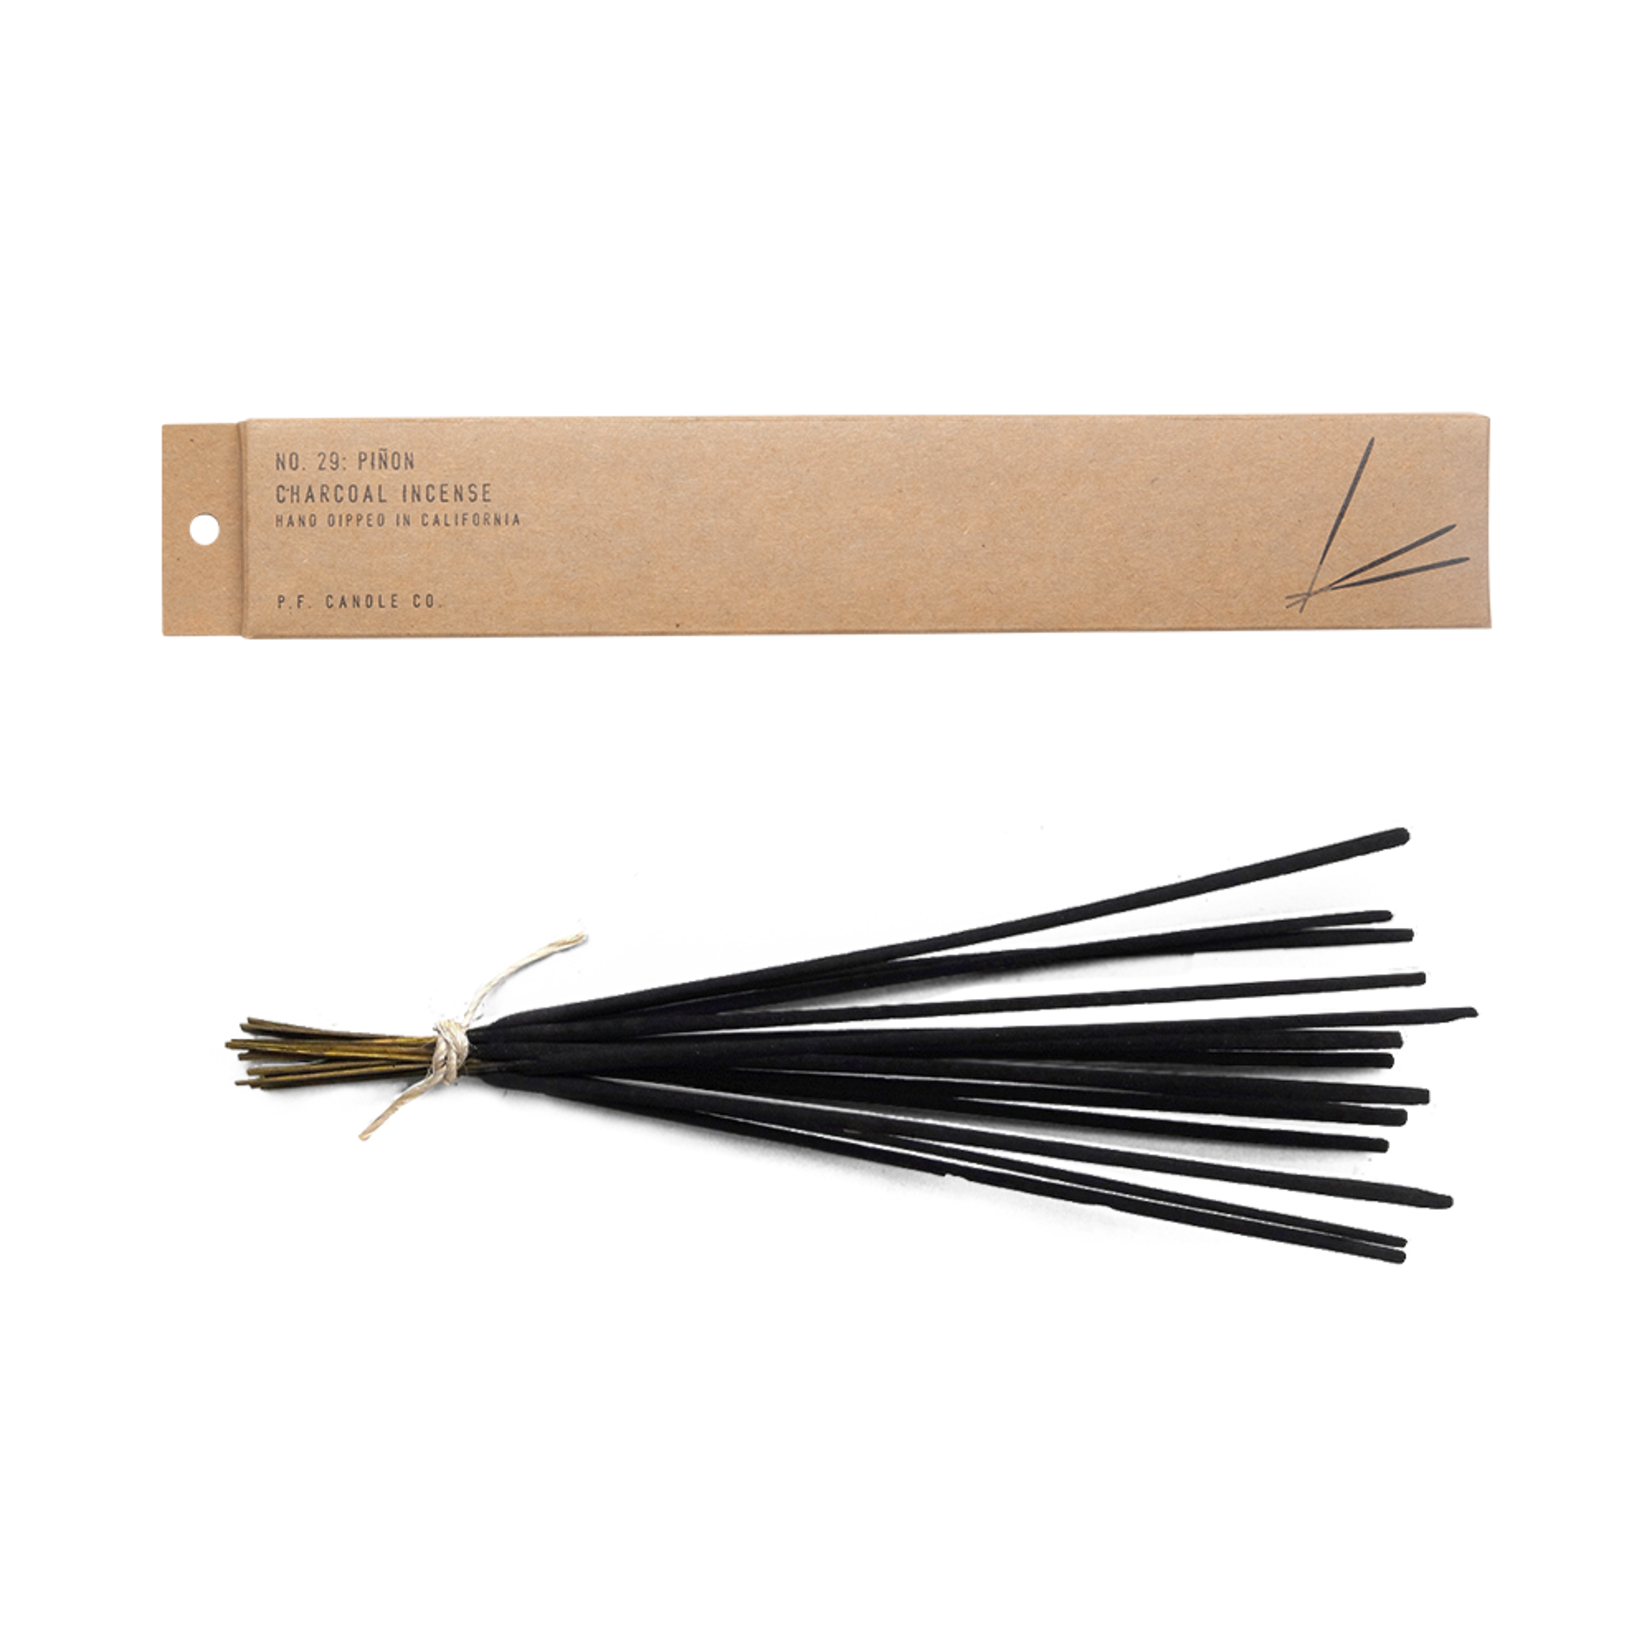 P.F. Candle Co. P.F. Candle Incense PINON